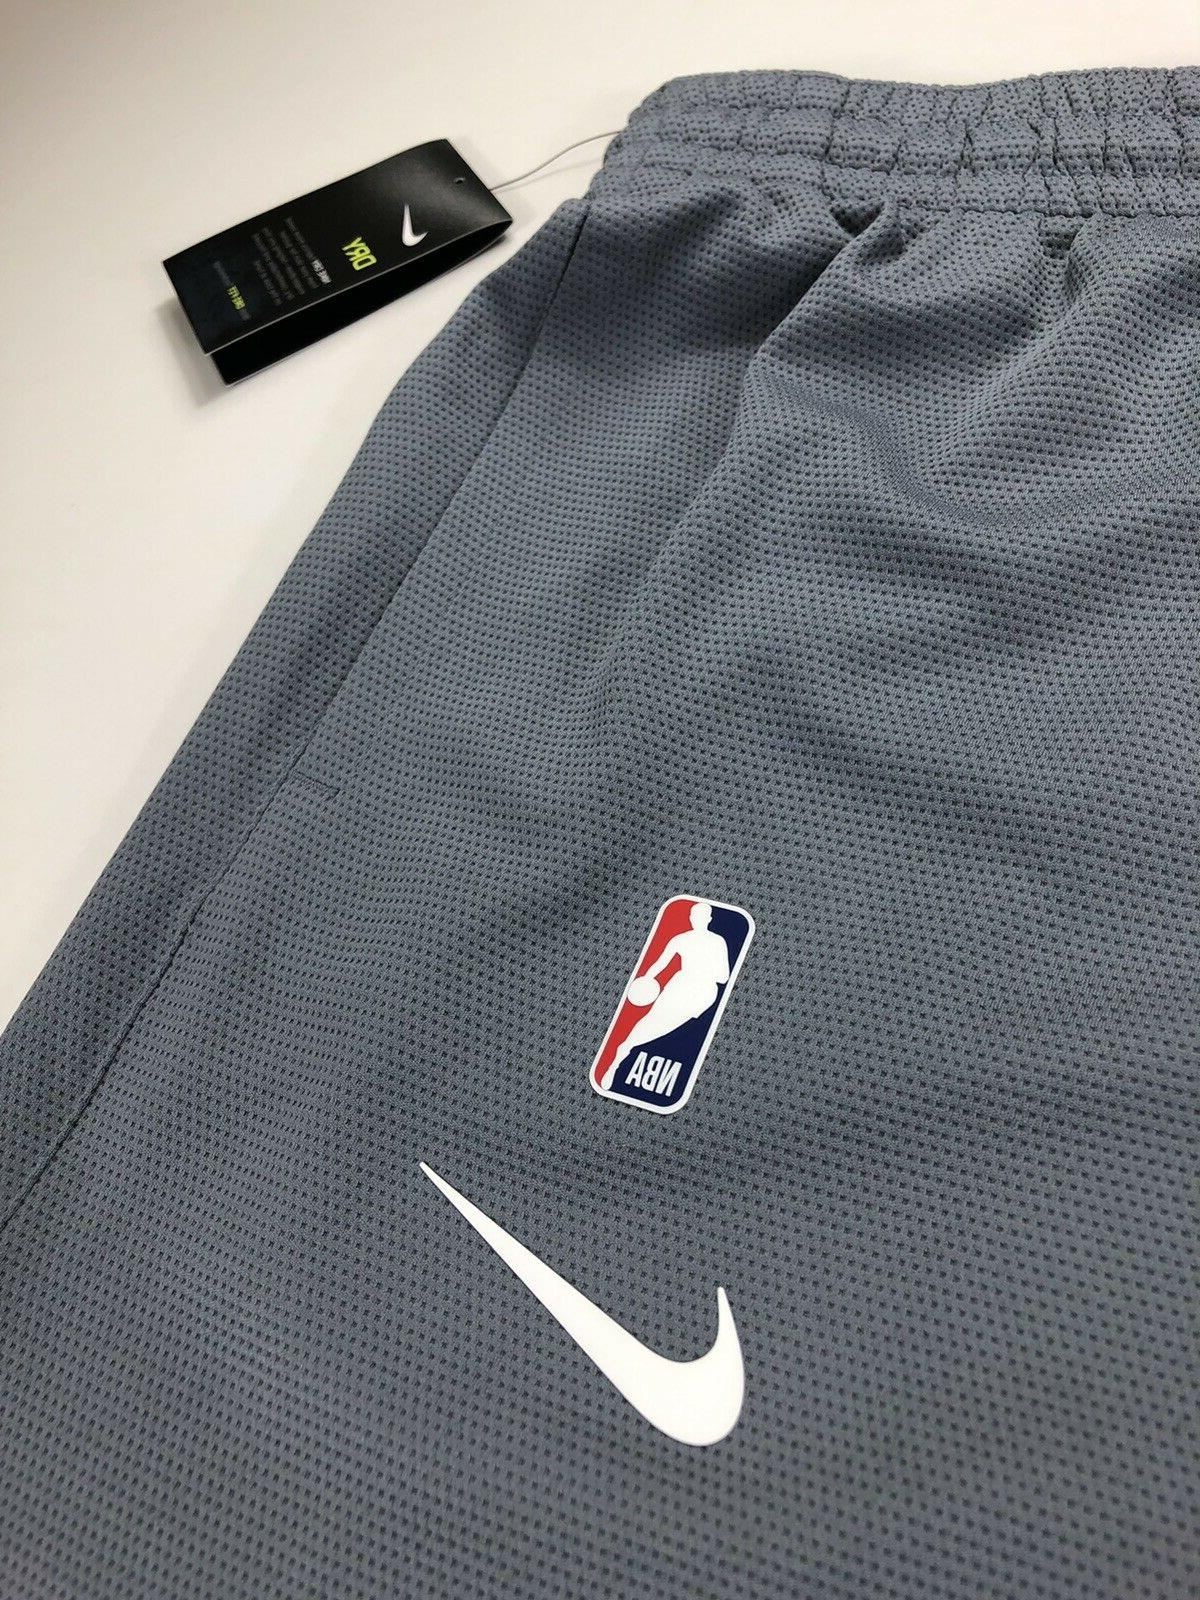 Nike Official Dri Fit Up Pants Size Large $60 859495